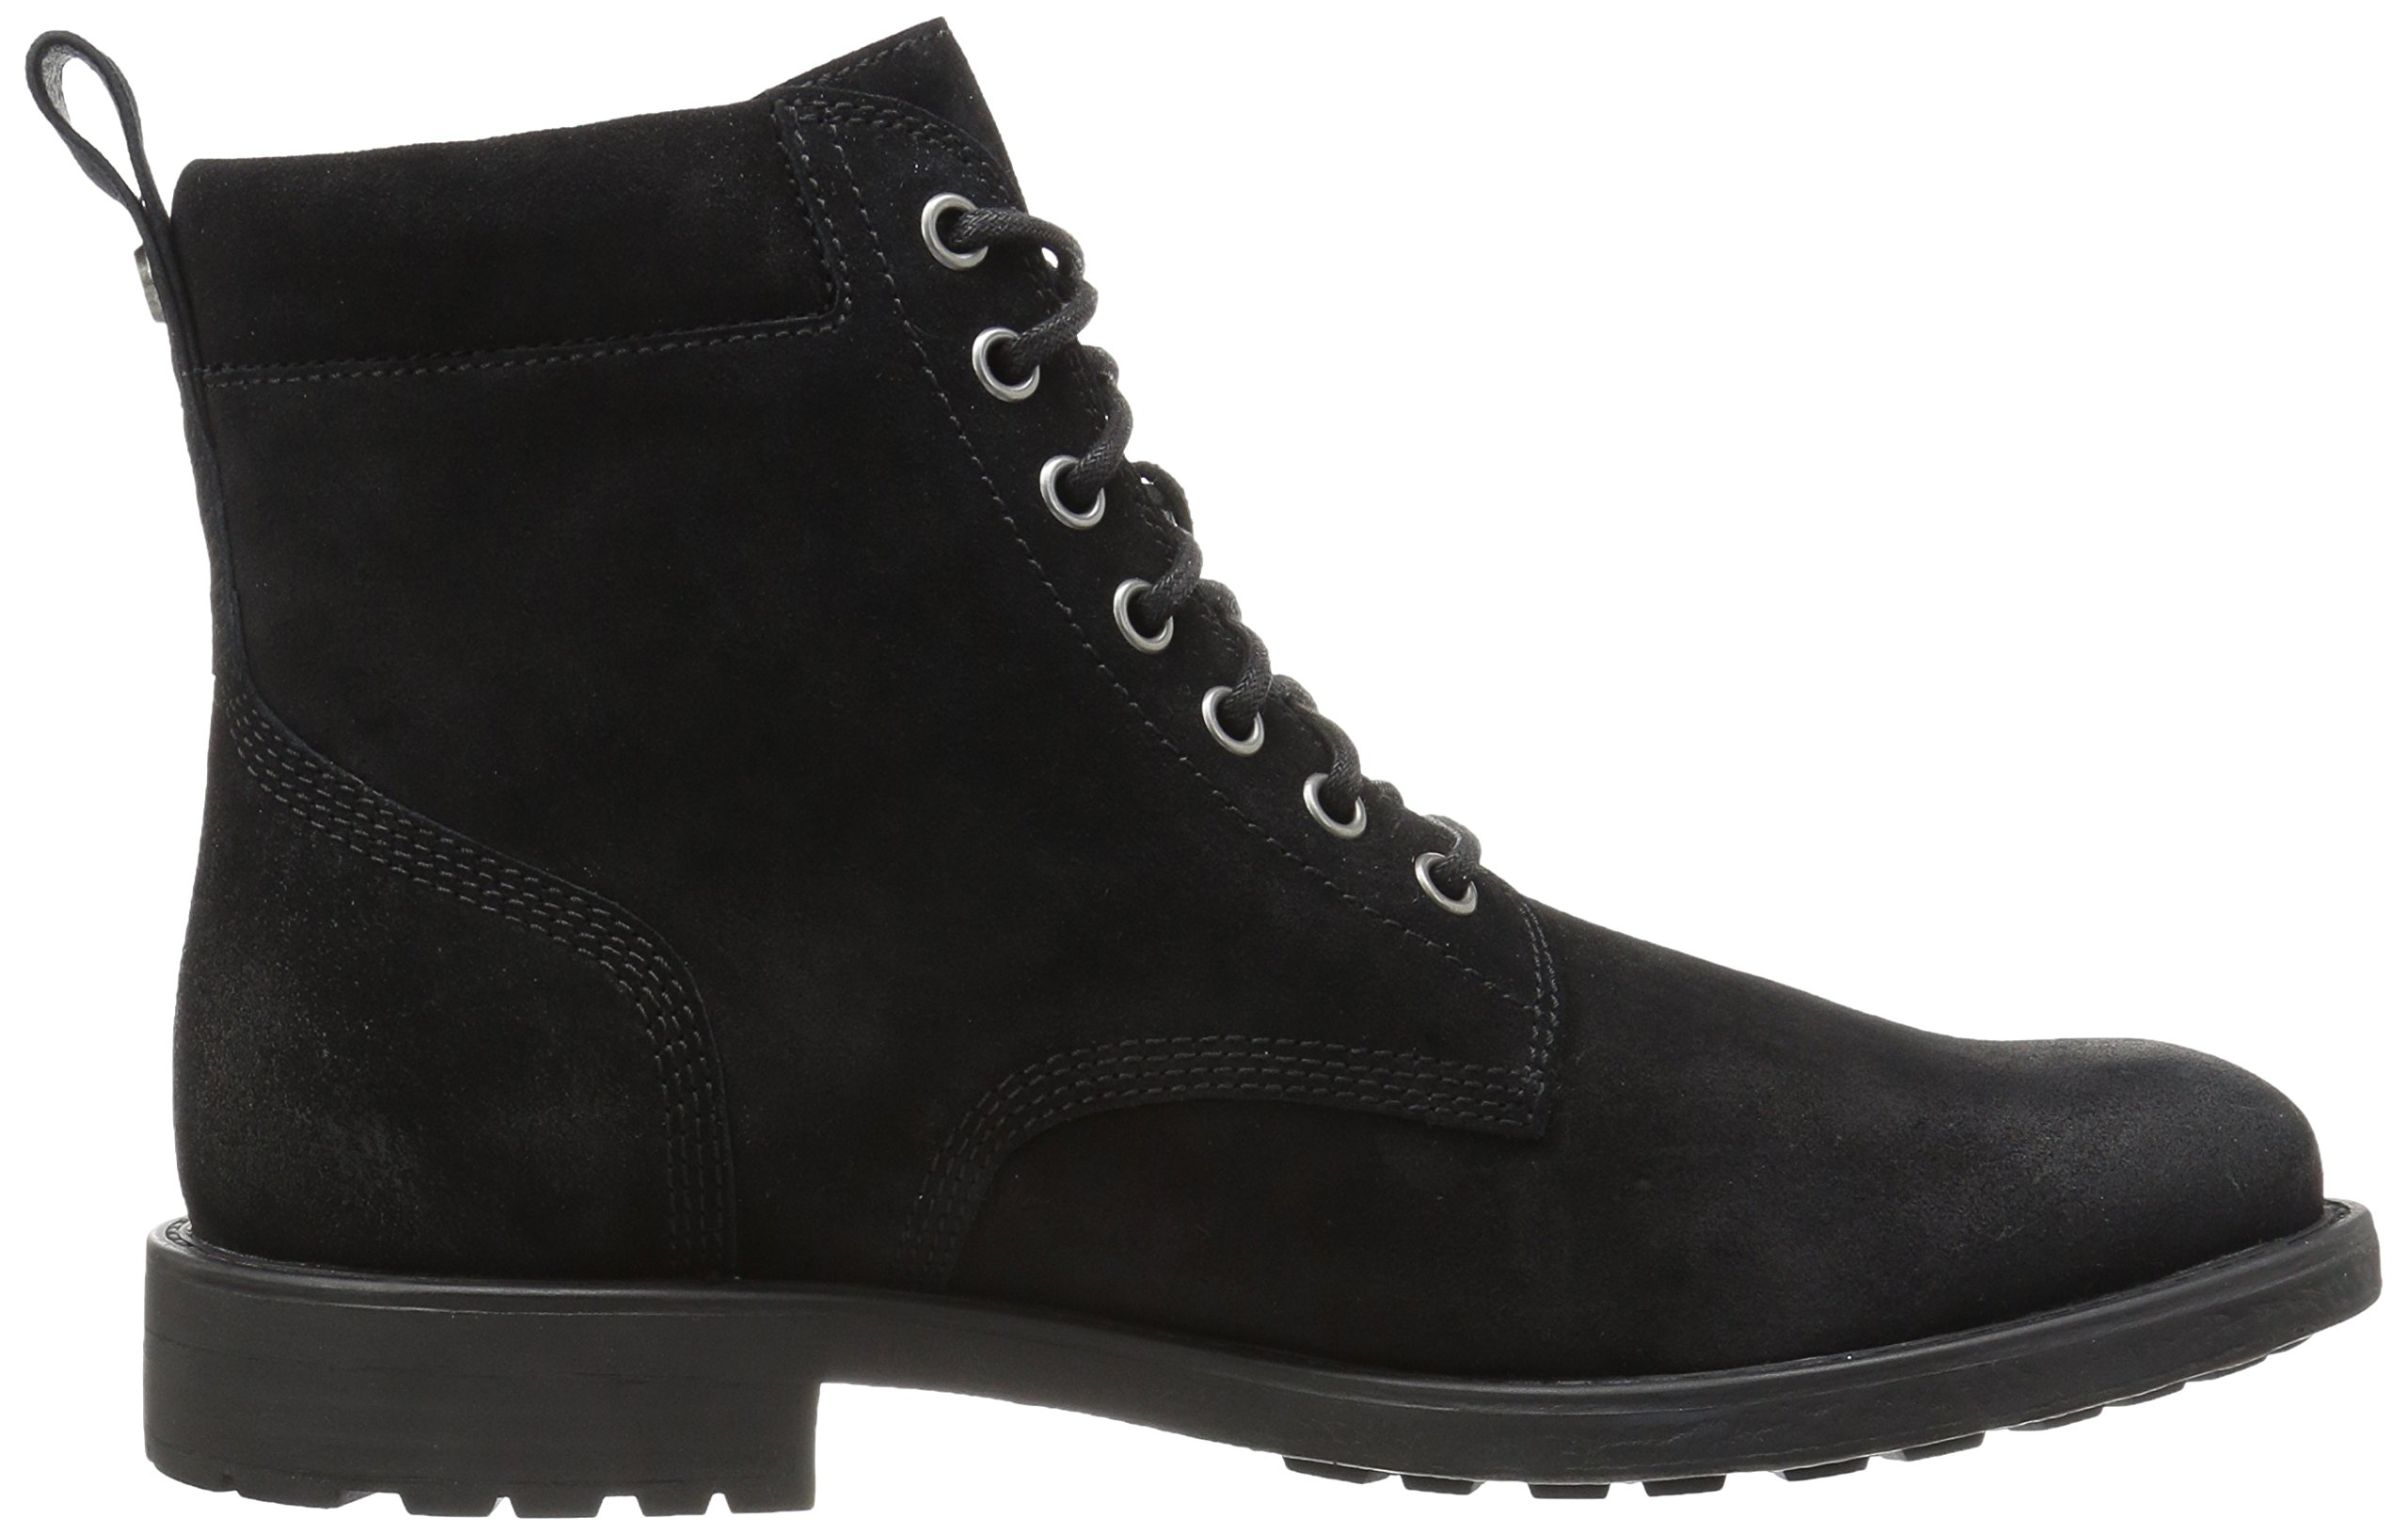 206 Collective Men's Denny Lace-up Motorcycle Boot, Black Burnish, 9.5 D US by 206 Collective (Image #7)